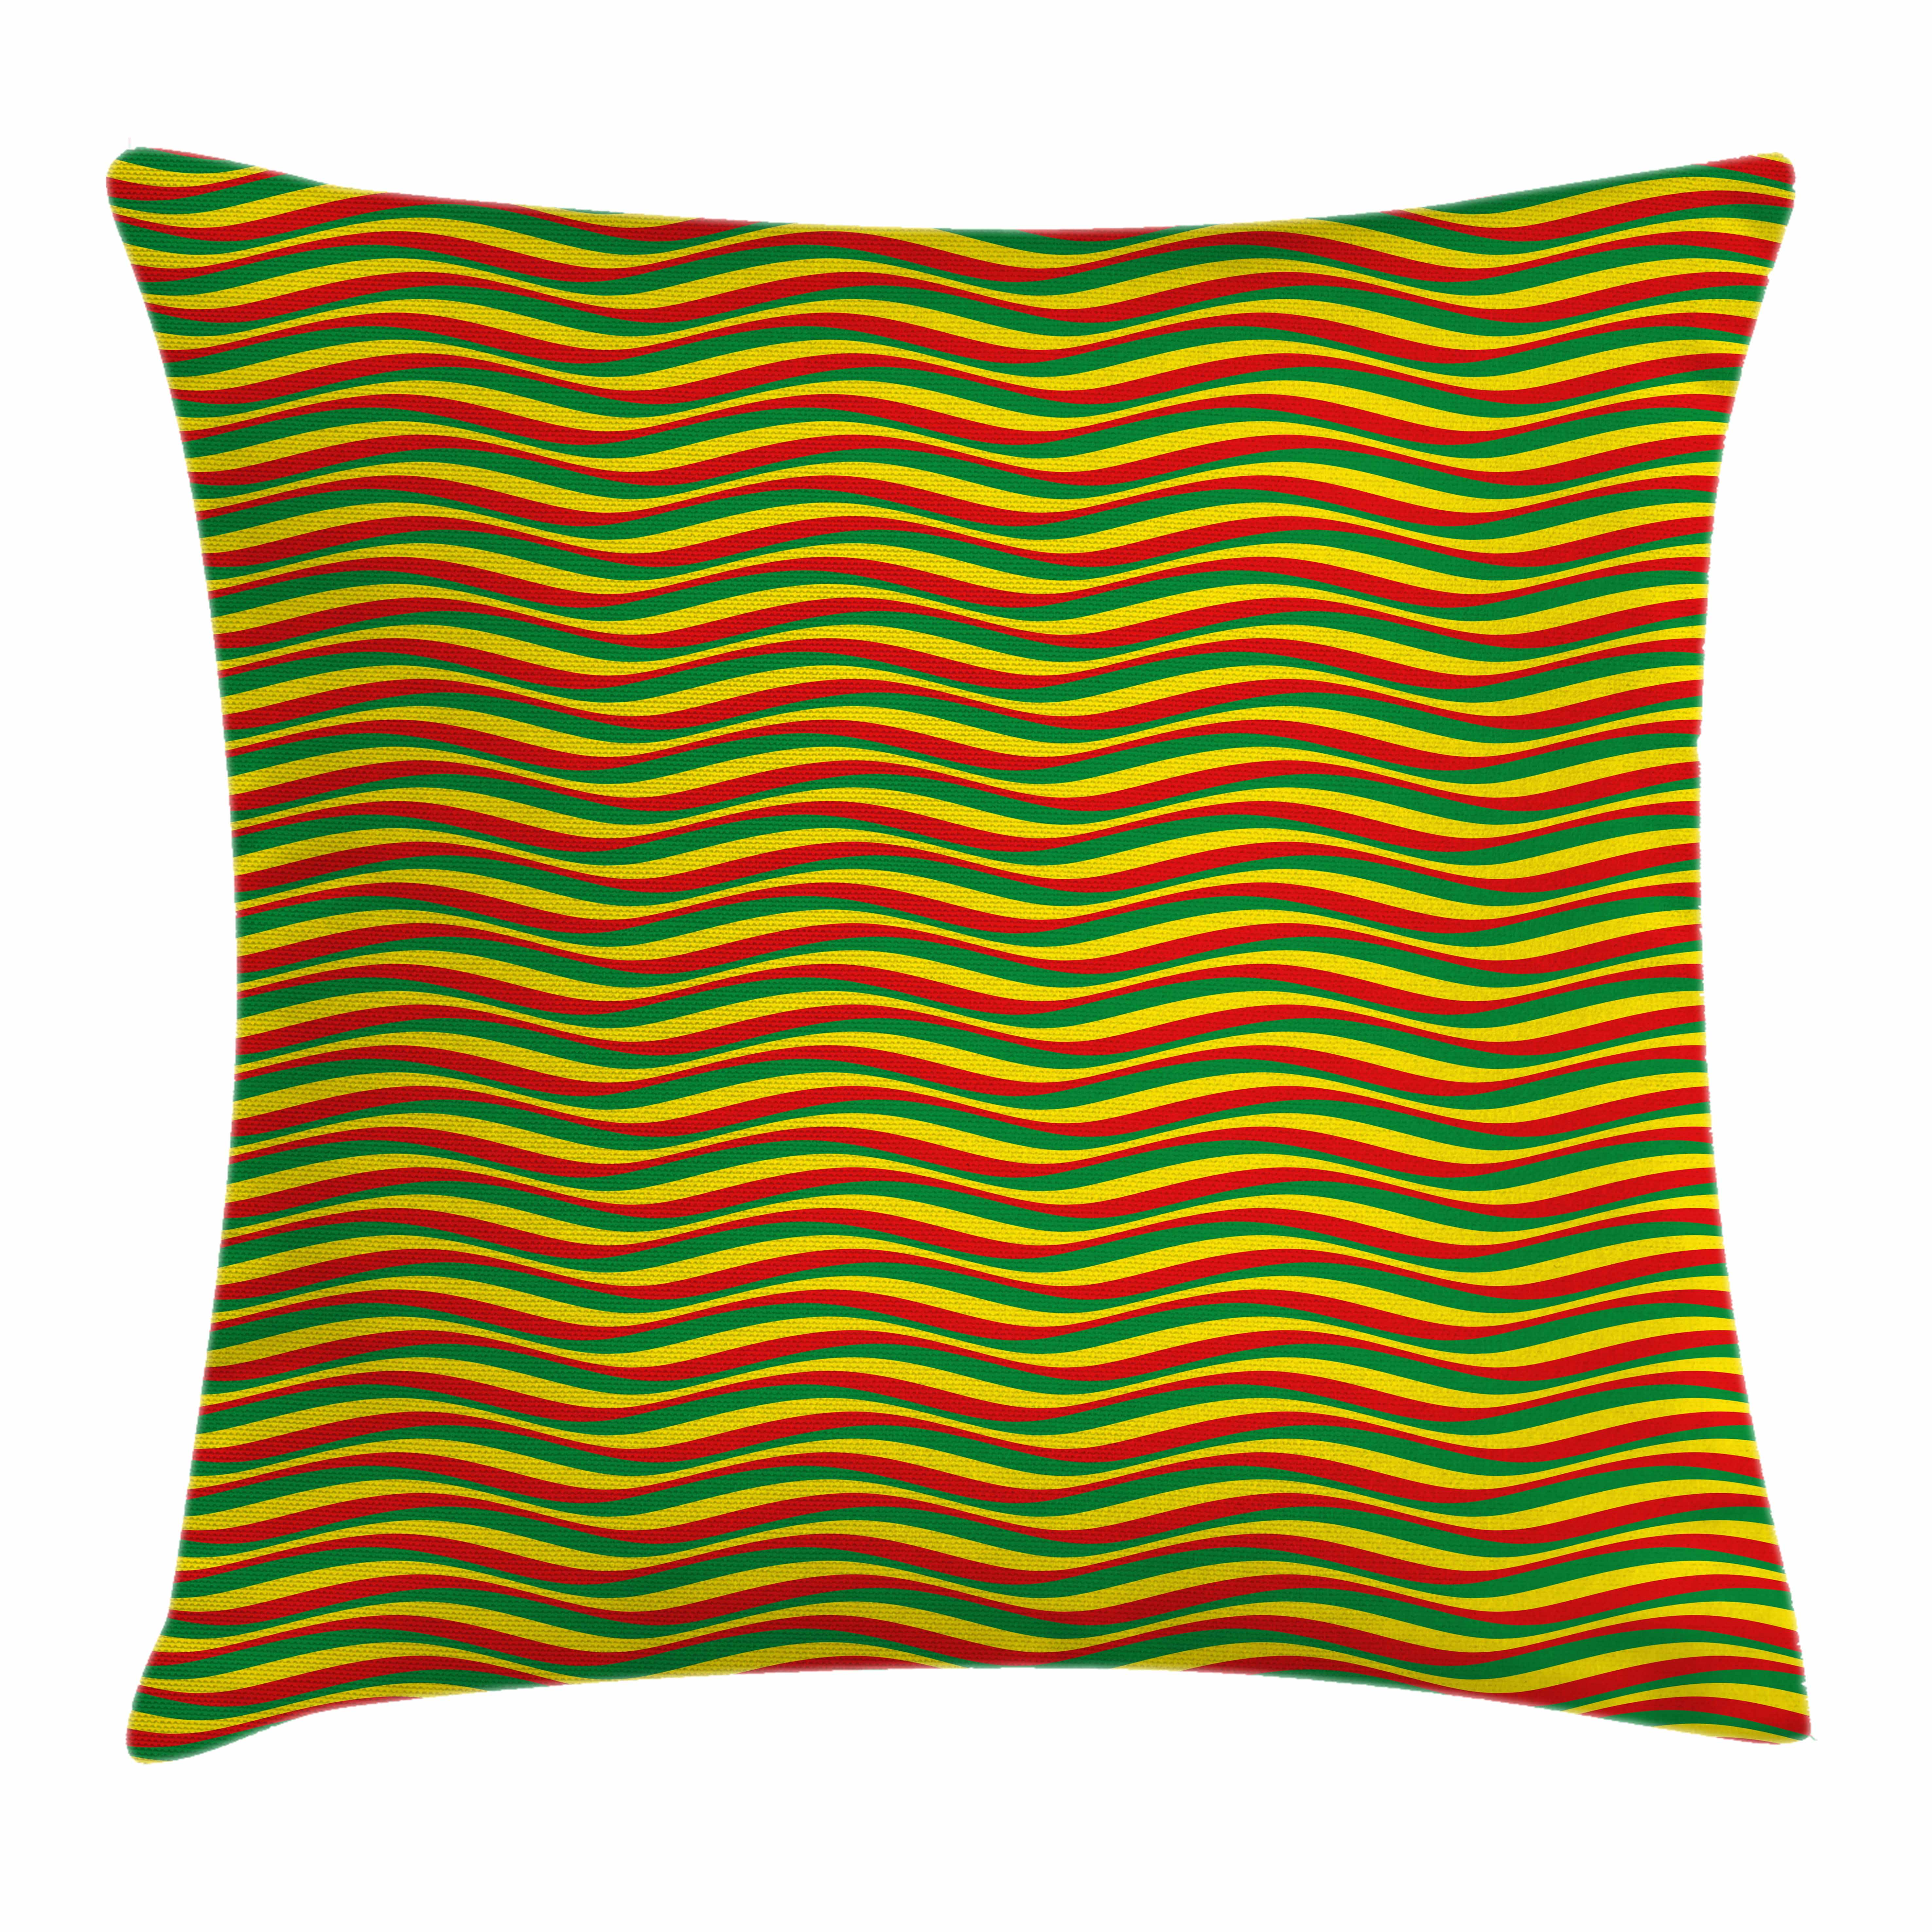 Rasta Throw Pillow Cushion Cover, Vivid Colors Ethiopian African Flag Colors in Wavy Style Stripes Image, Decorative Square Accent Pillow Case, 16 X 16 Inches, Marigold Green and Red, by Ambesonne